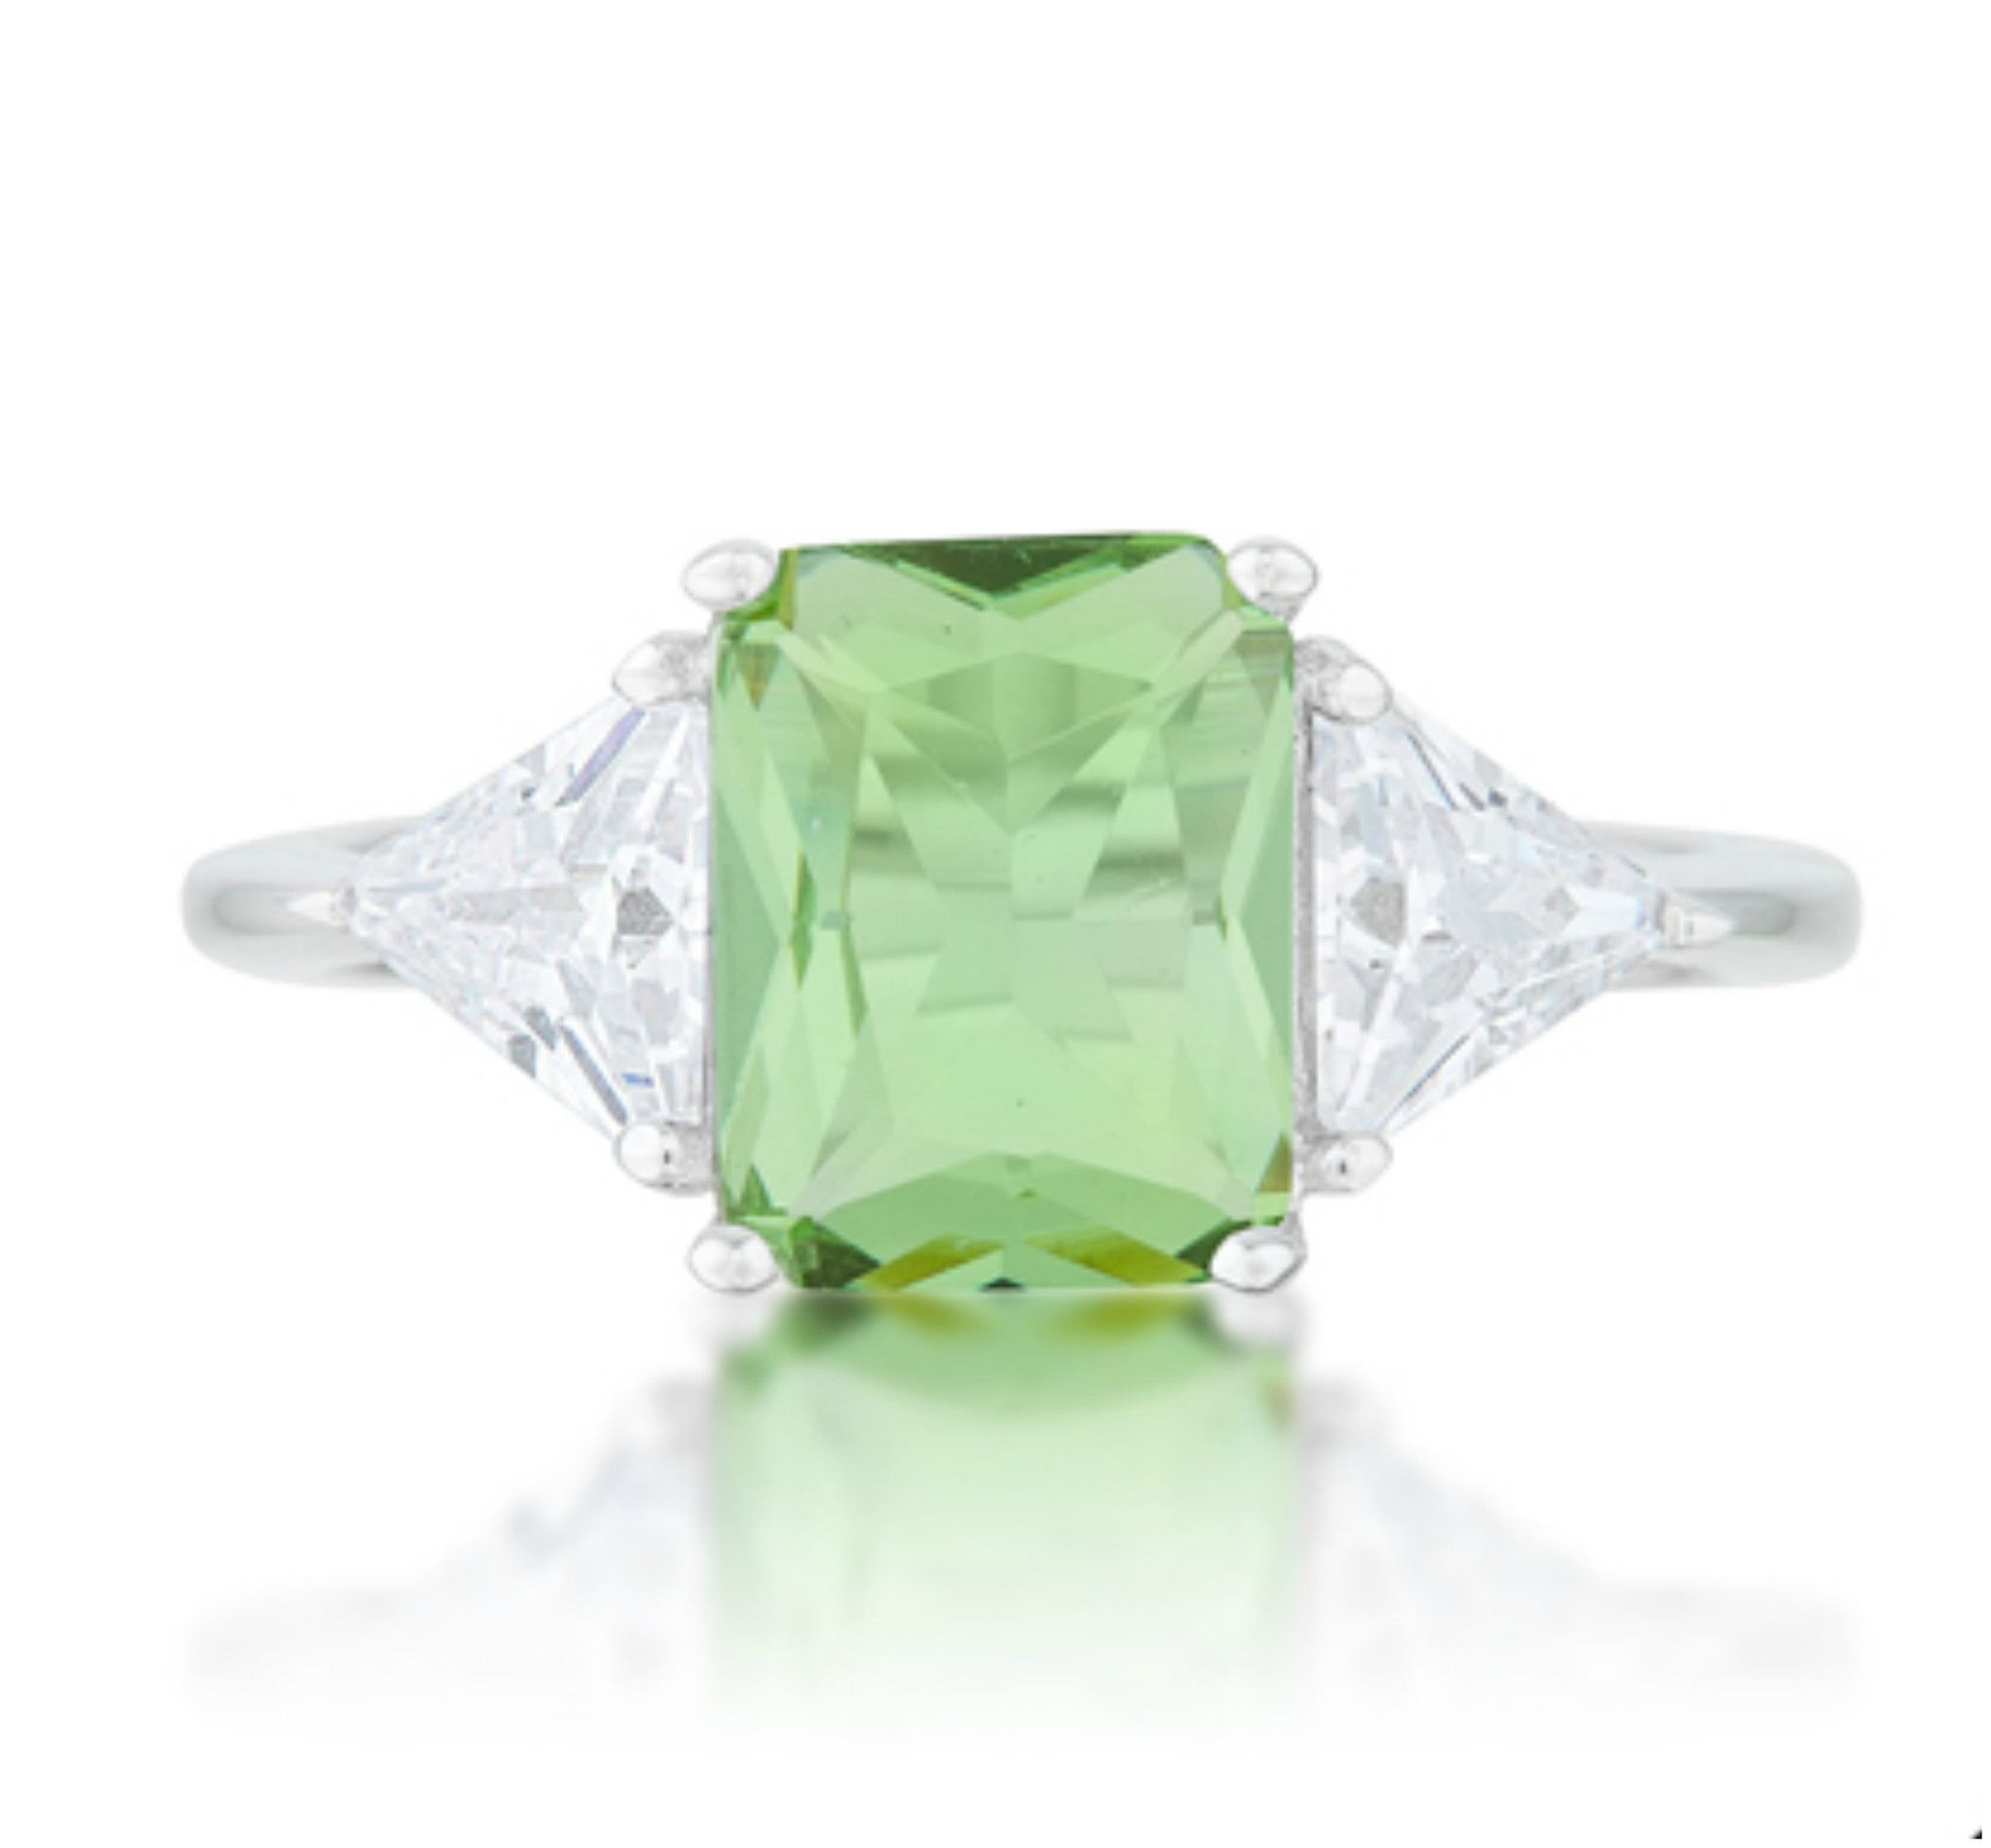 spo adiamor halo page blog engagement radiant ashley at engagment of diamond emerald author ring custom cut